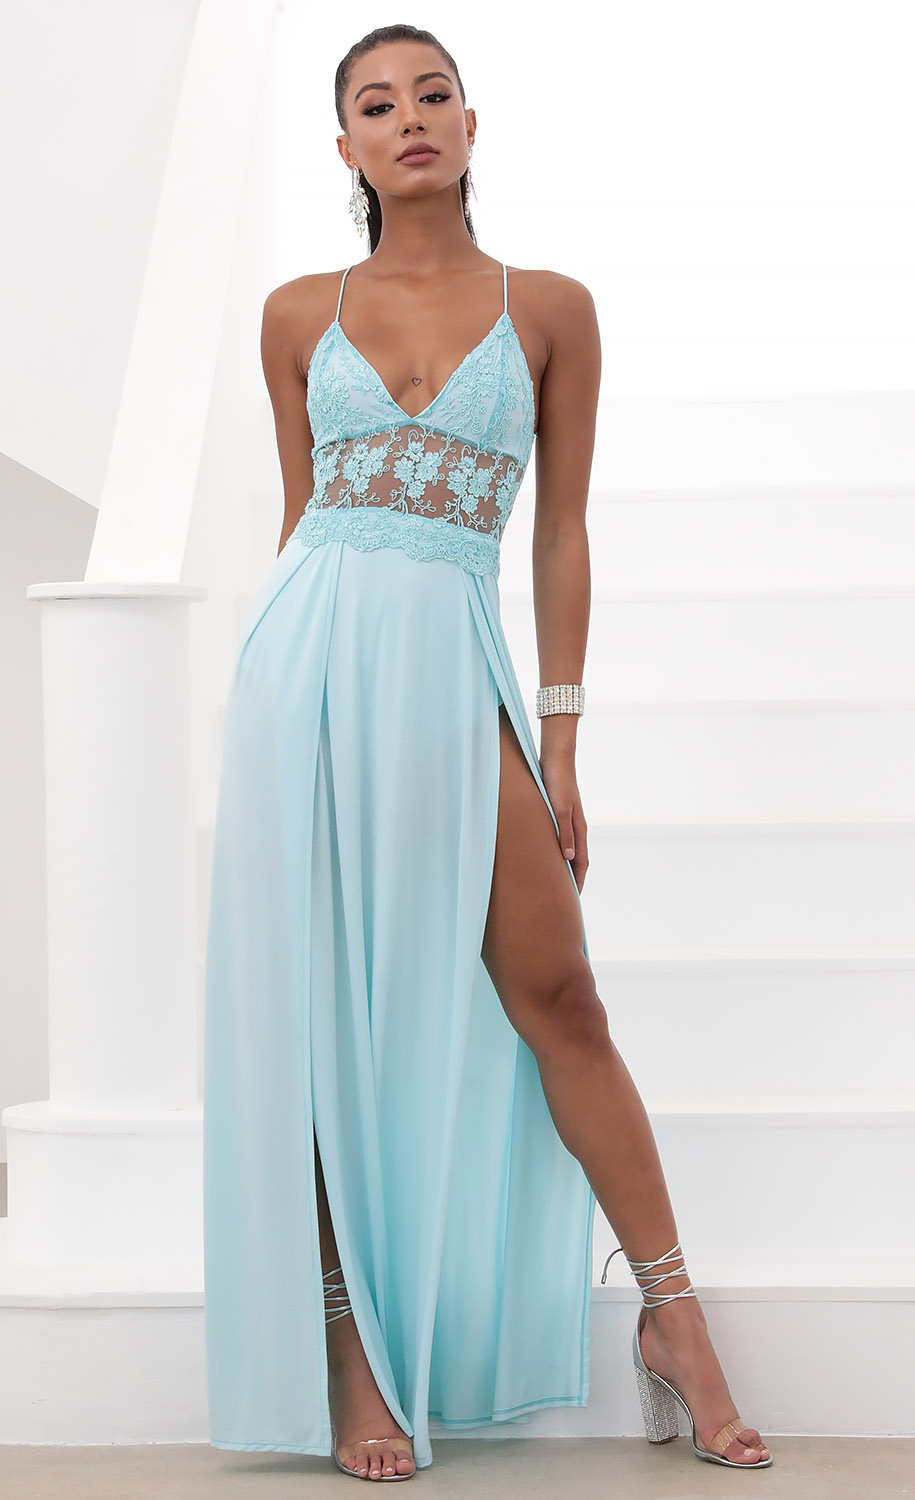 Tulum Lace Maxi Dress in Aqua Blue